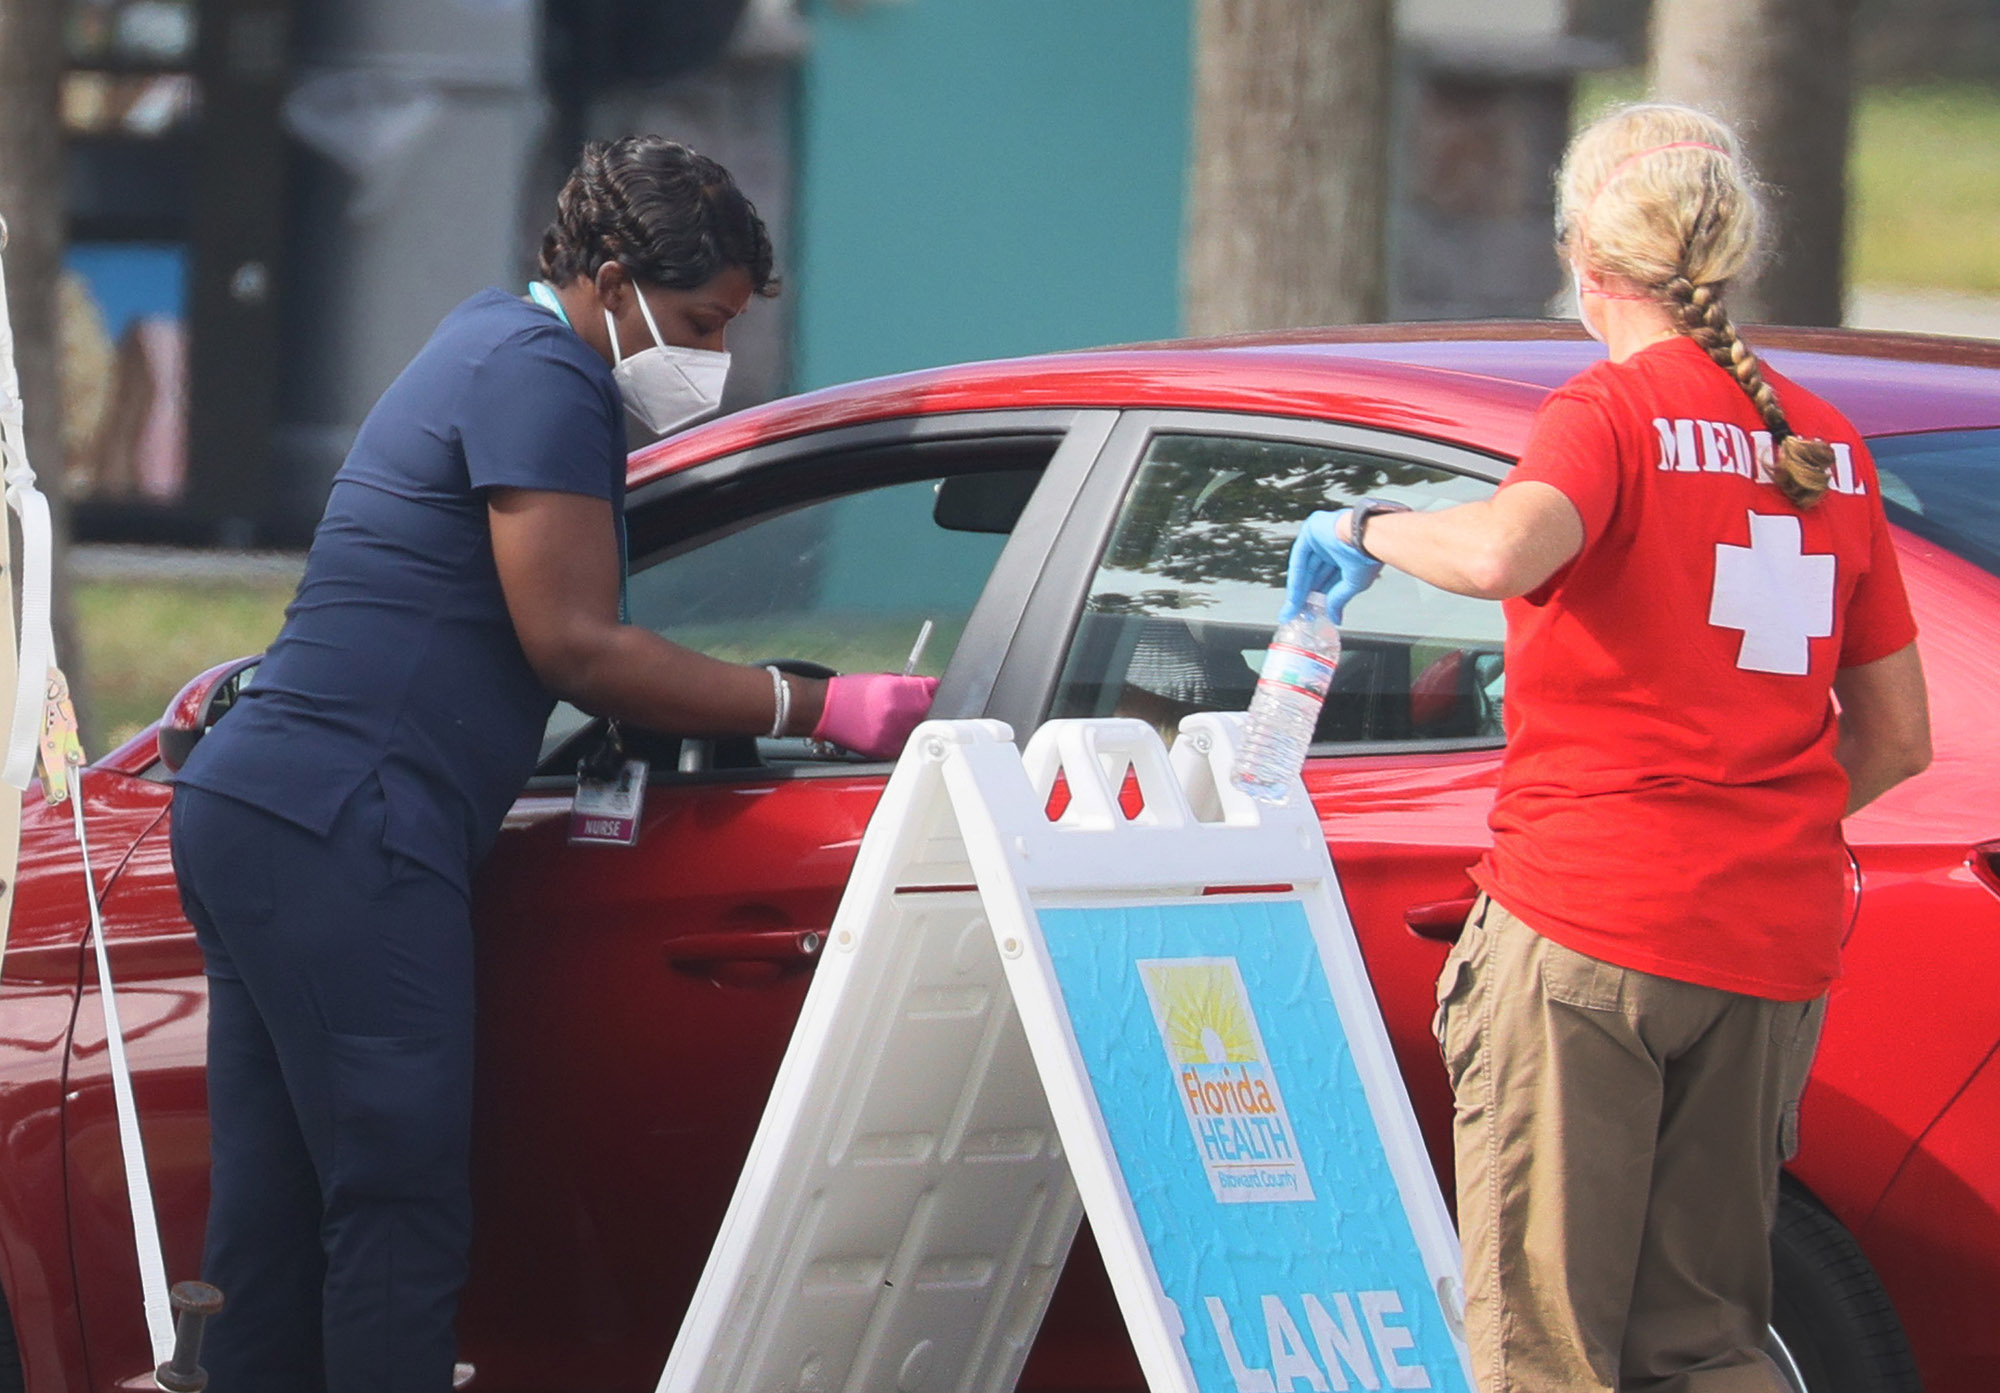 A healthcare worker with the Florida Department of Health in Broward prepares to administer a COVID-19 vaccine at a drive-thru vaccination site in Davie, Florida, on Tuesday, January 4.